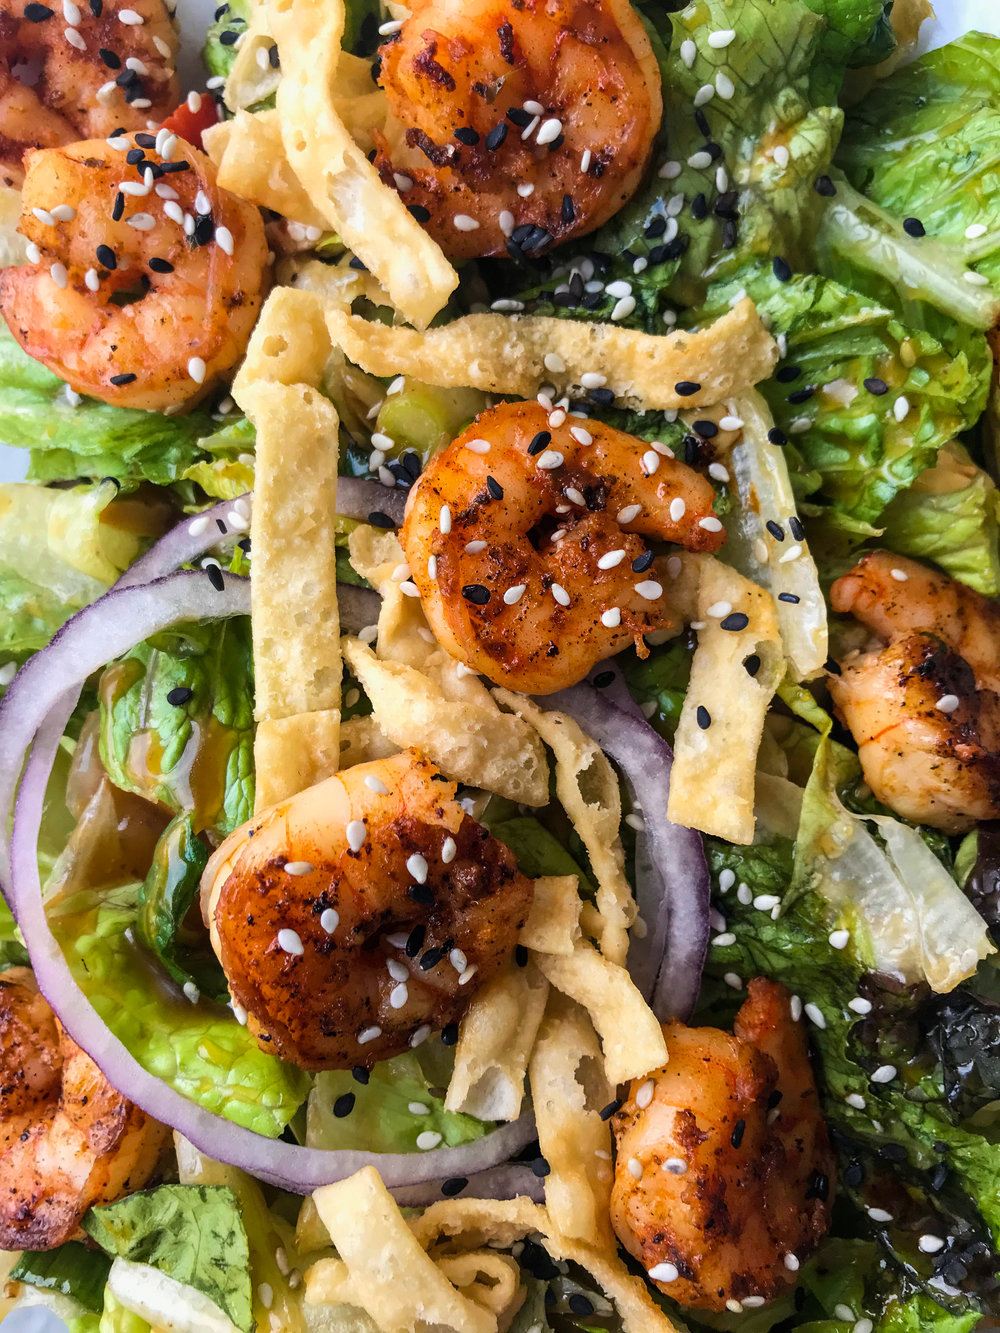 Asian Shrimp Salad from California Fish Grill - Succulent shrimp on a bed of mixed greens topped with sesame seeds, tomatoes, almonds, crispy wontons, red & green onions, and topped with our tangy Asian dressing.$9.99